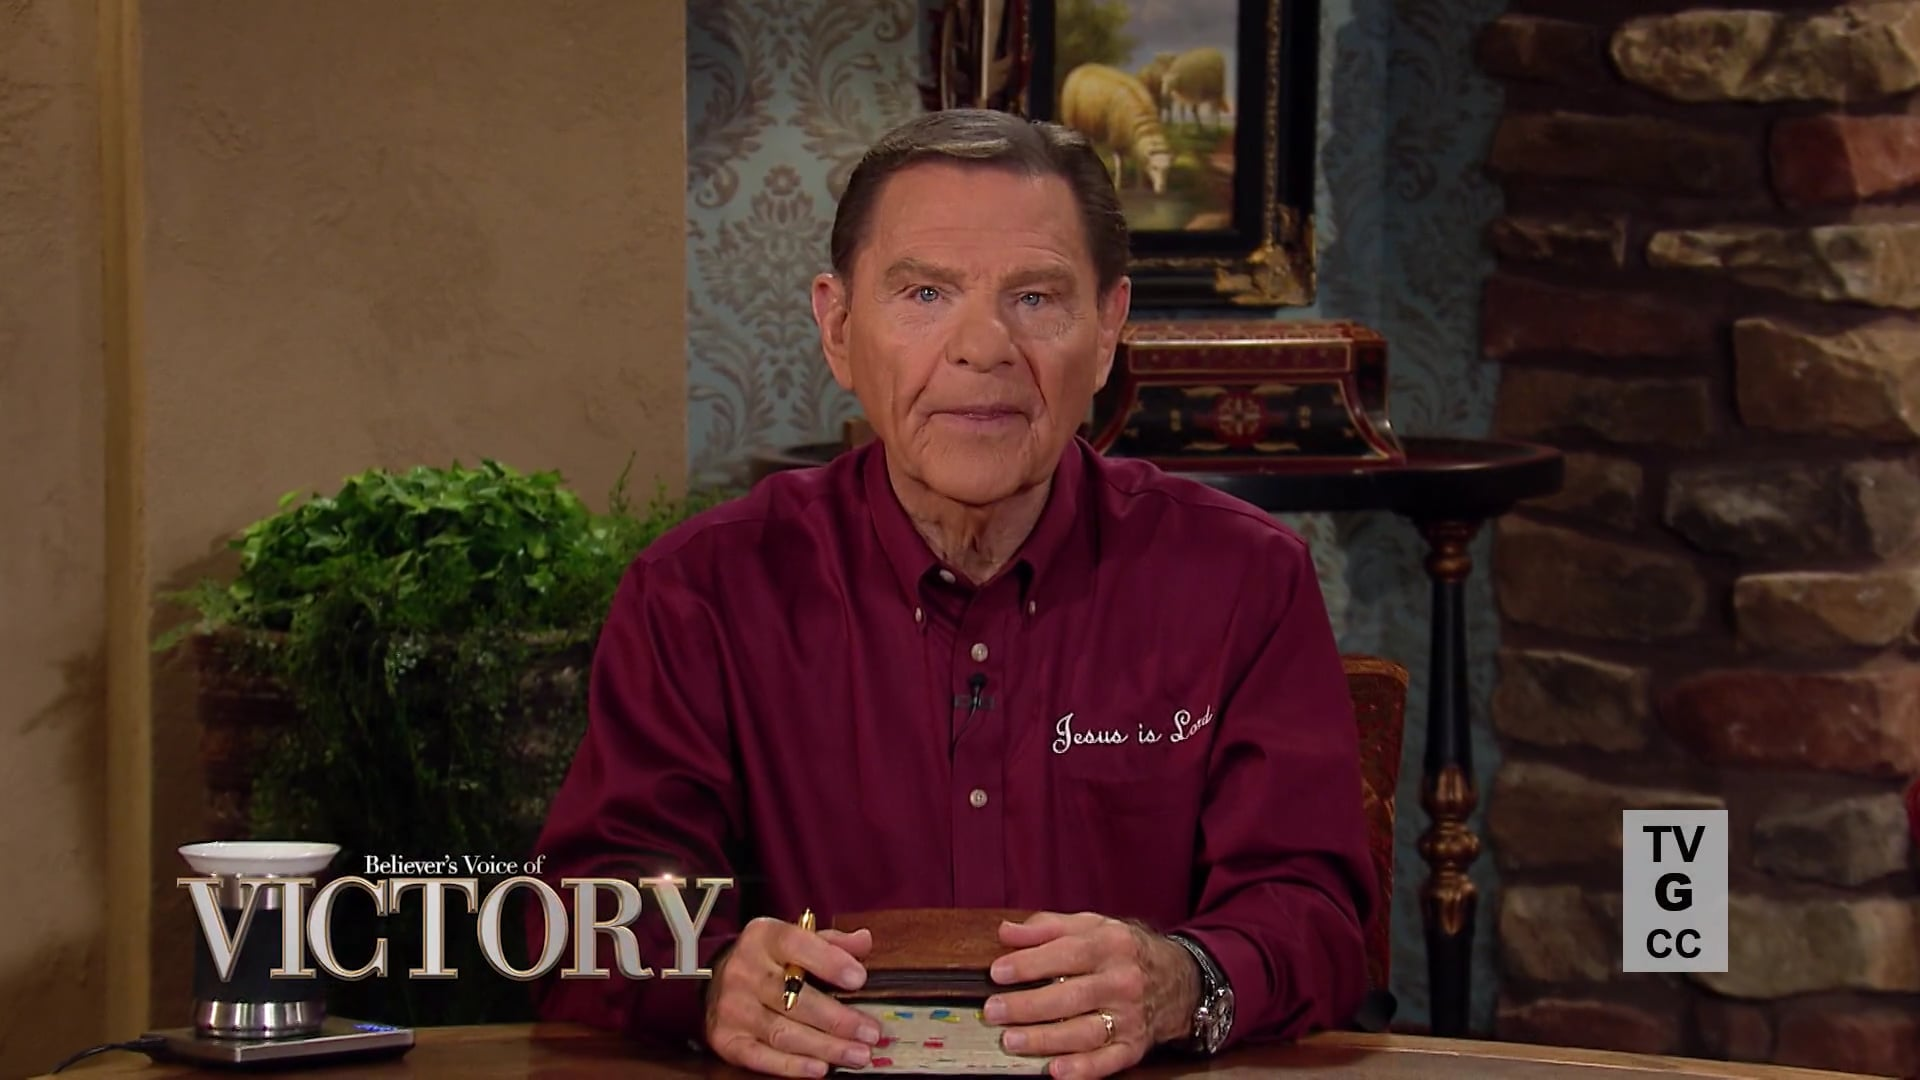 It's up to us to stop the sin of strife now! Watch Believer's Voice of Victory as Kenneth Copeland teaches why the spirit of division, contentions, arguments and anything else that stirs up strife is the work of the devil. Discover how choosing to obey God's WORD will bring unity and peace as only He can give!